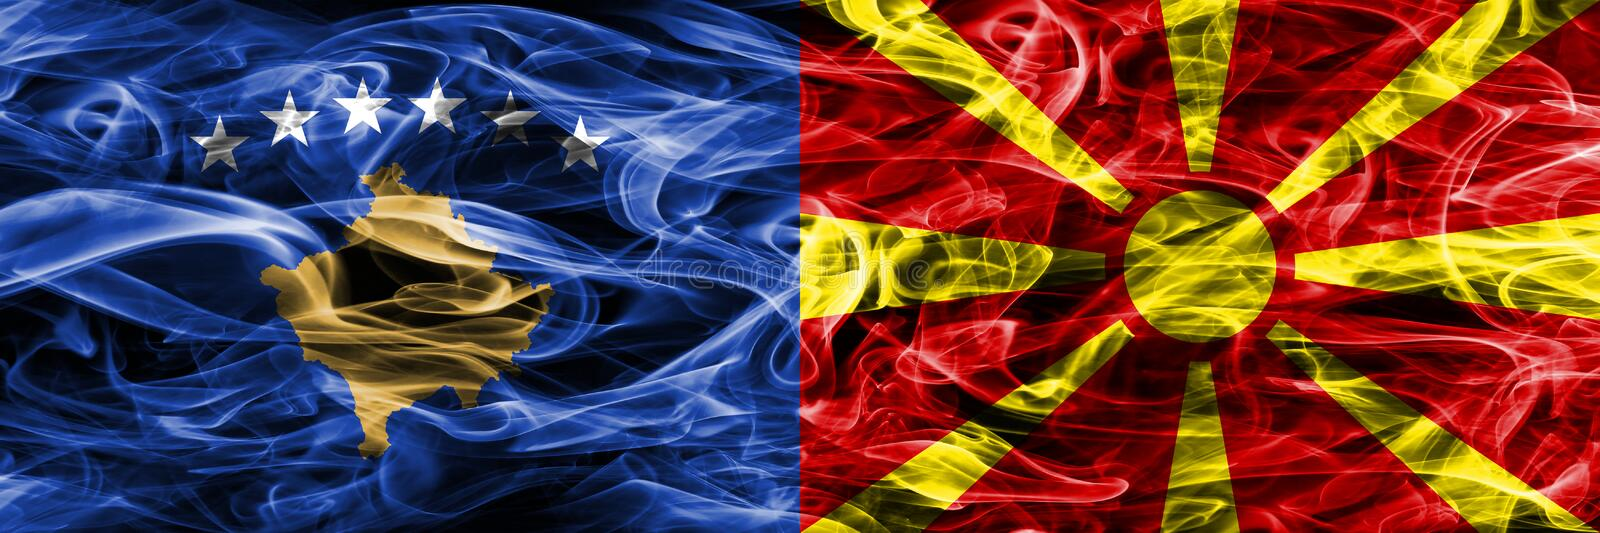 Kosovo vs Macedonia smoke flags placed side by side royalty free stock photo